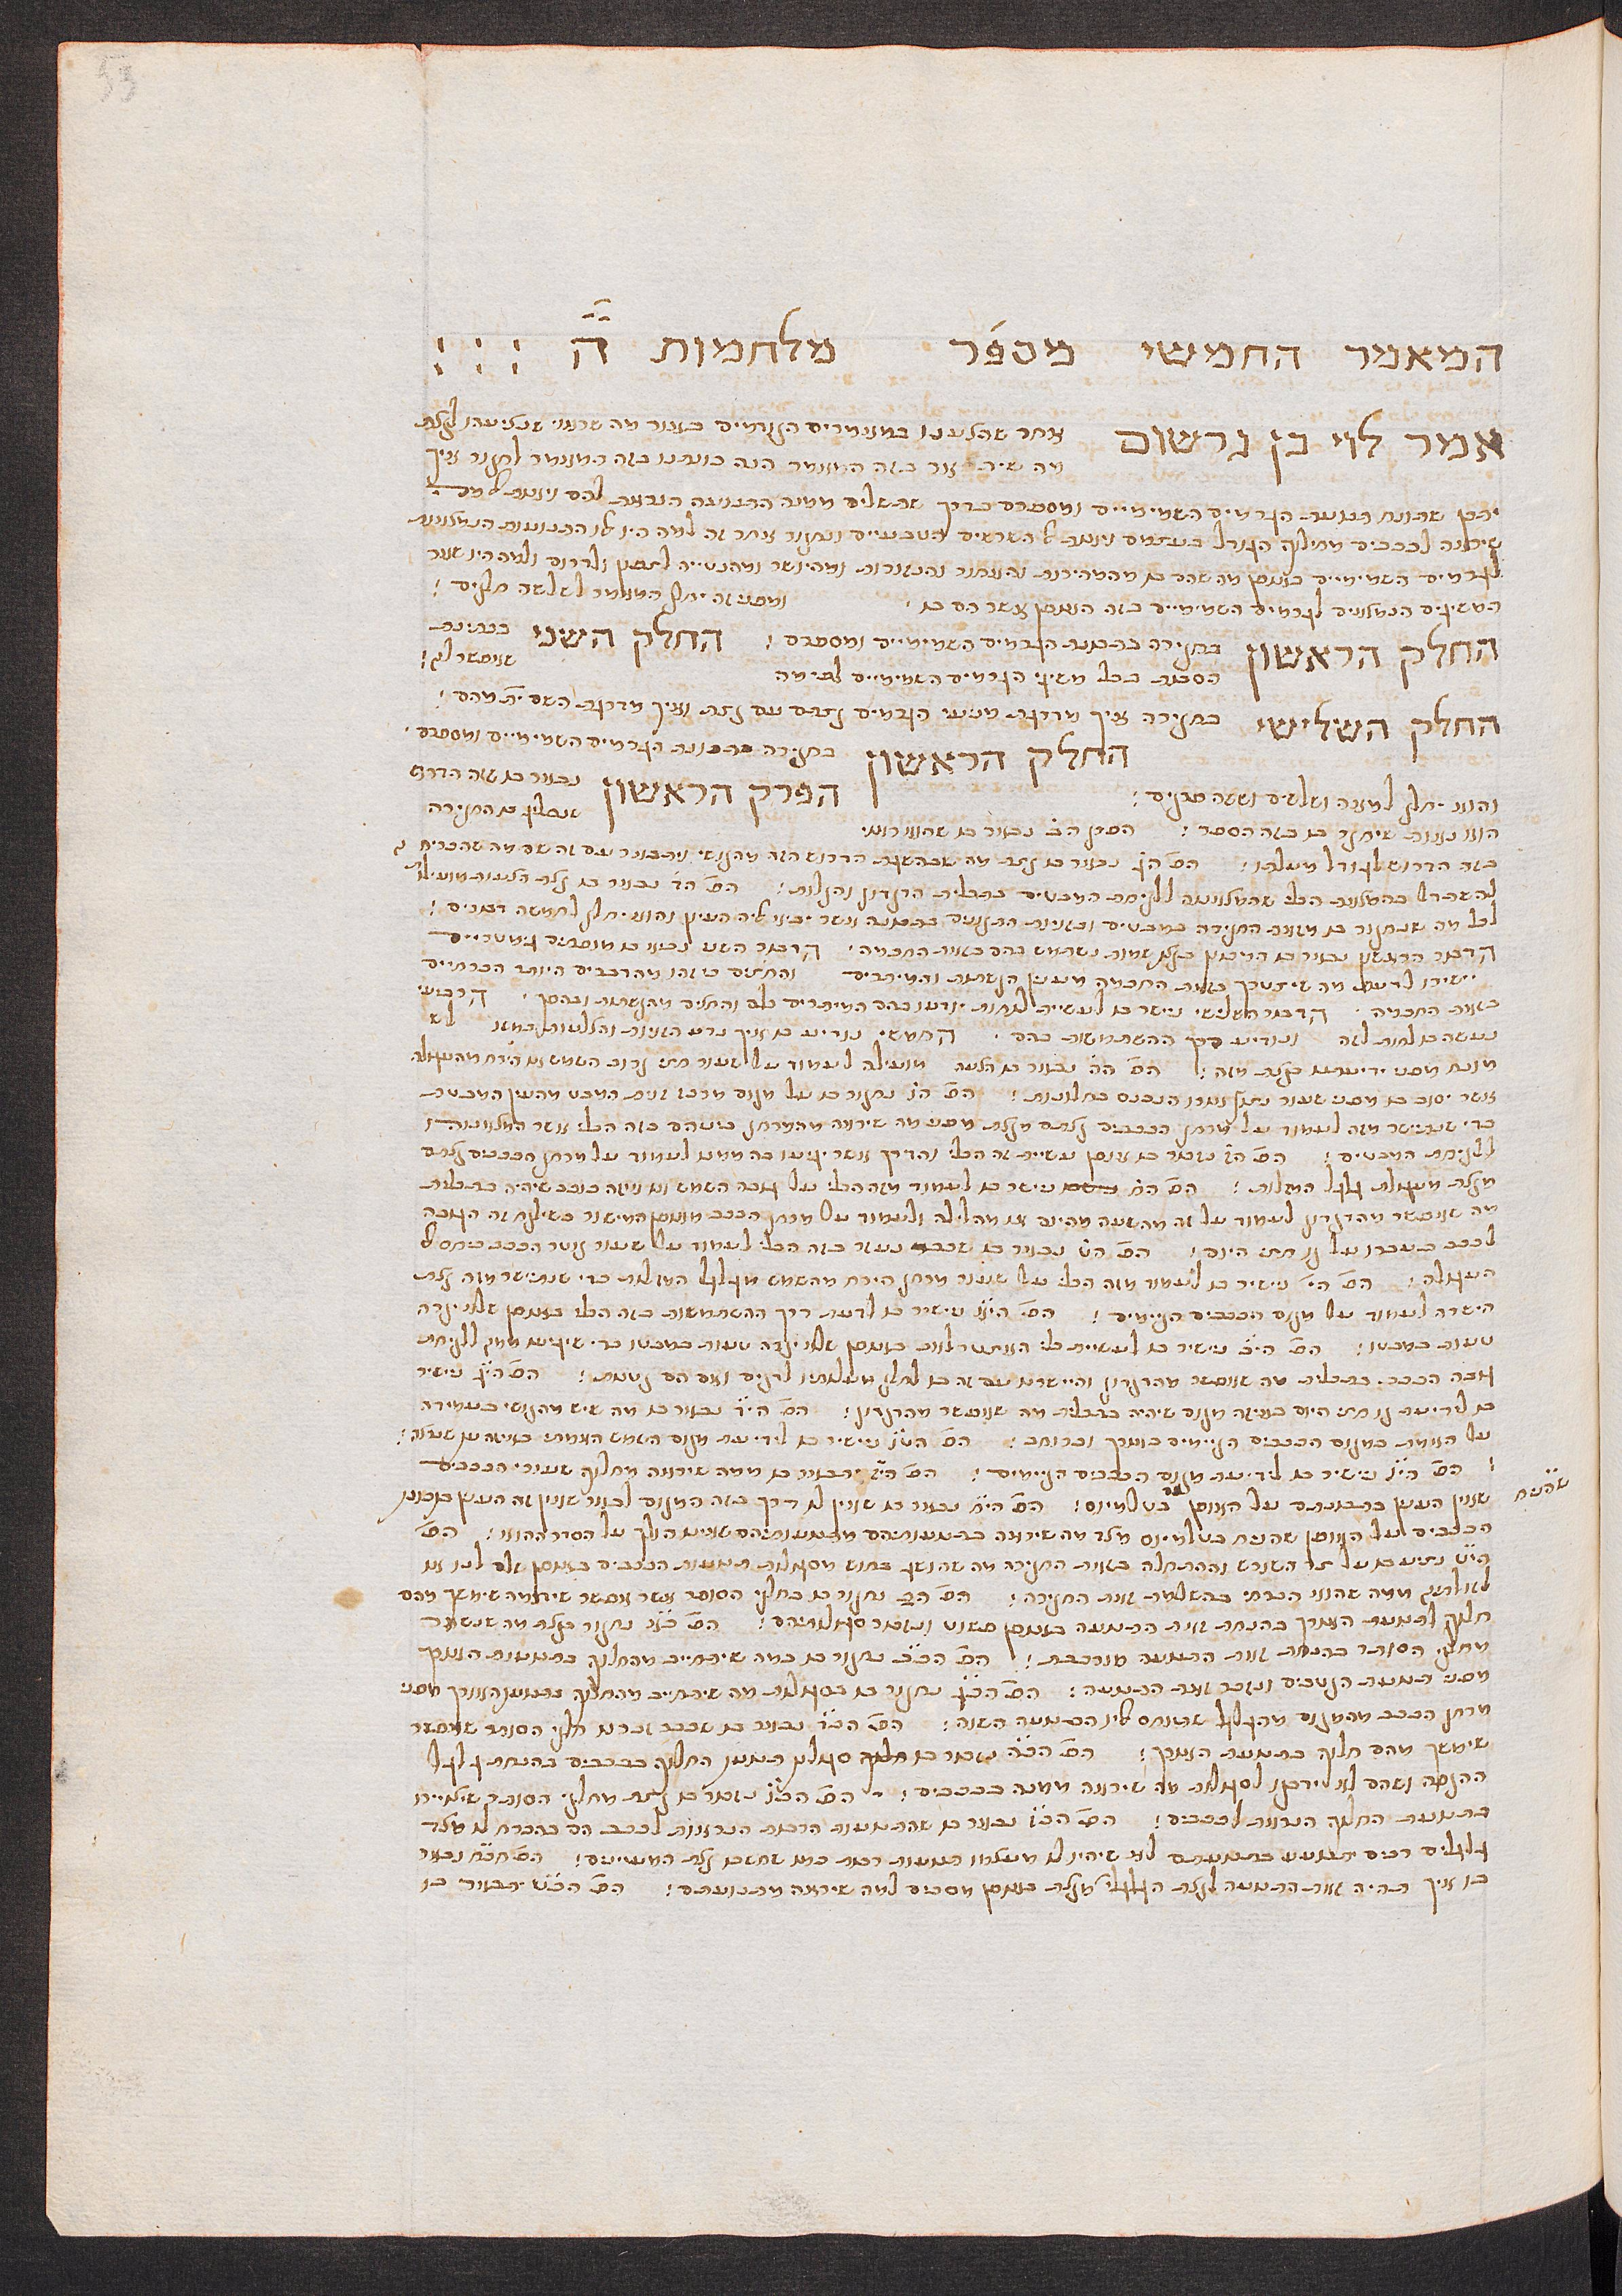 Milchamot Hashem Book V Part 1 - Manuscript Berlin Oriental 4057, Folio 53r